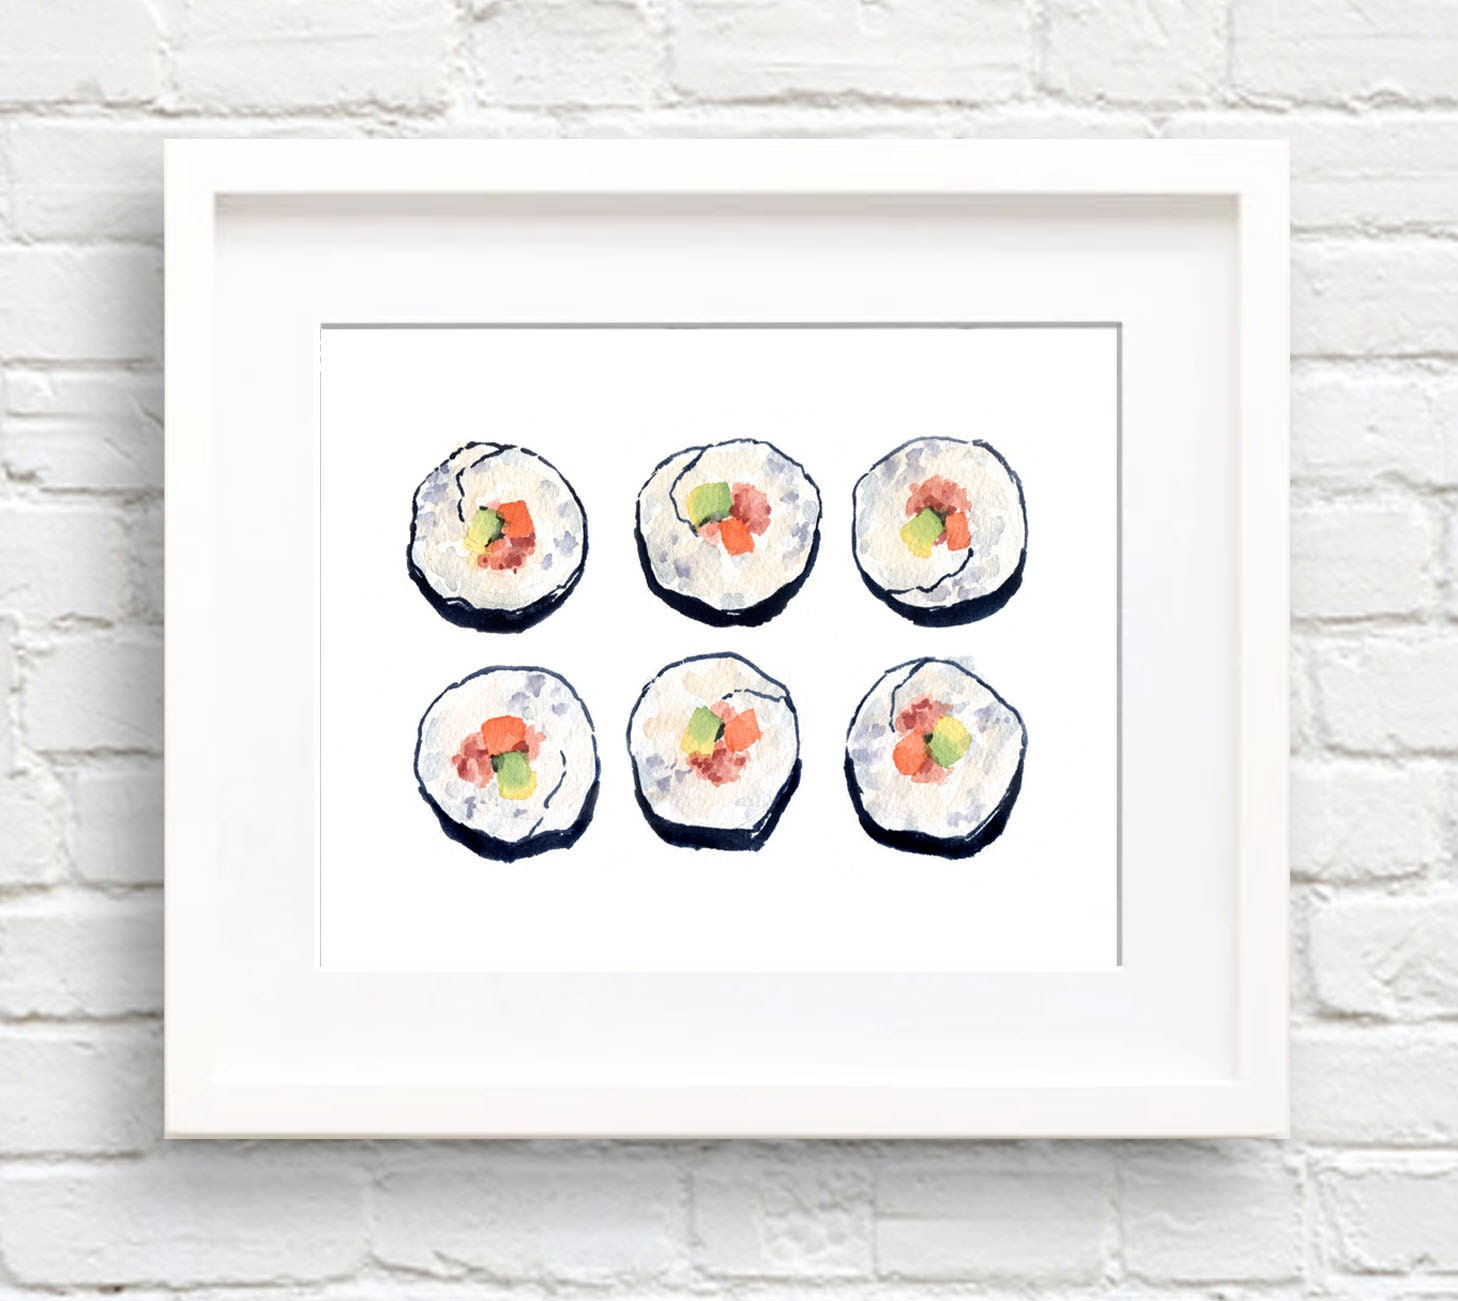 Art Prints For Kitchen Wall: Sushi Art Print Kitchen Wall Decor Watercolor Painting